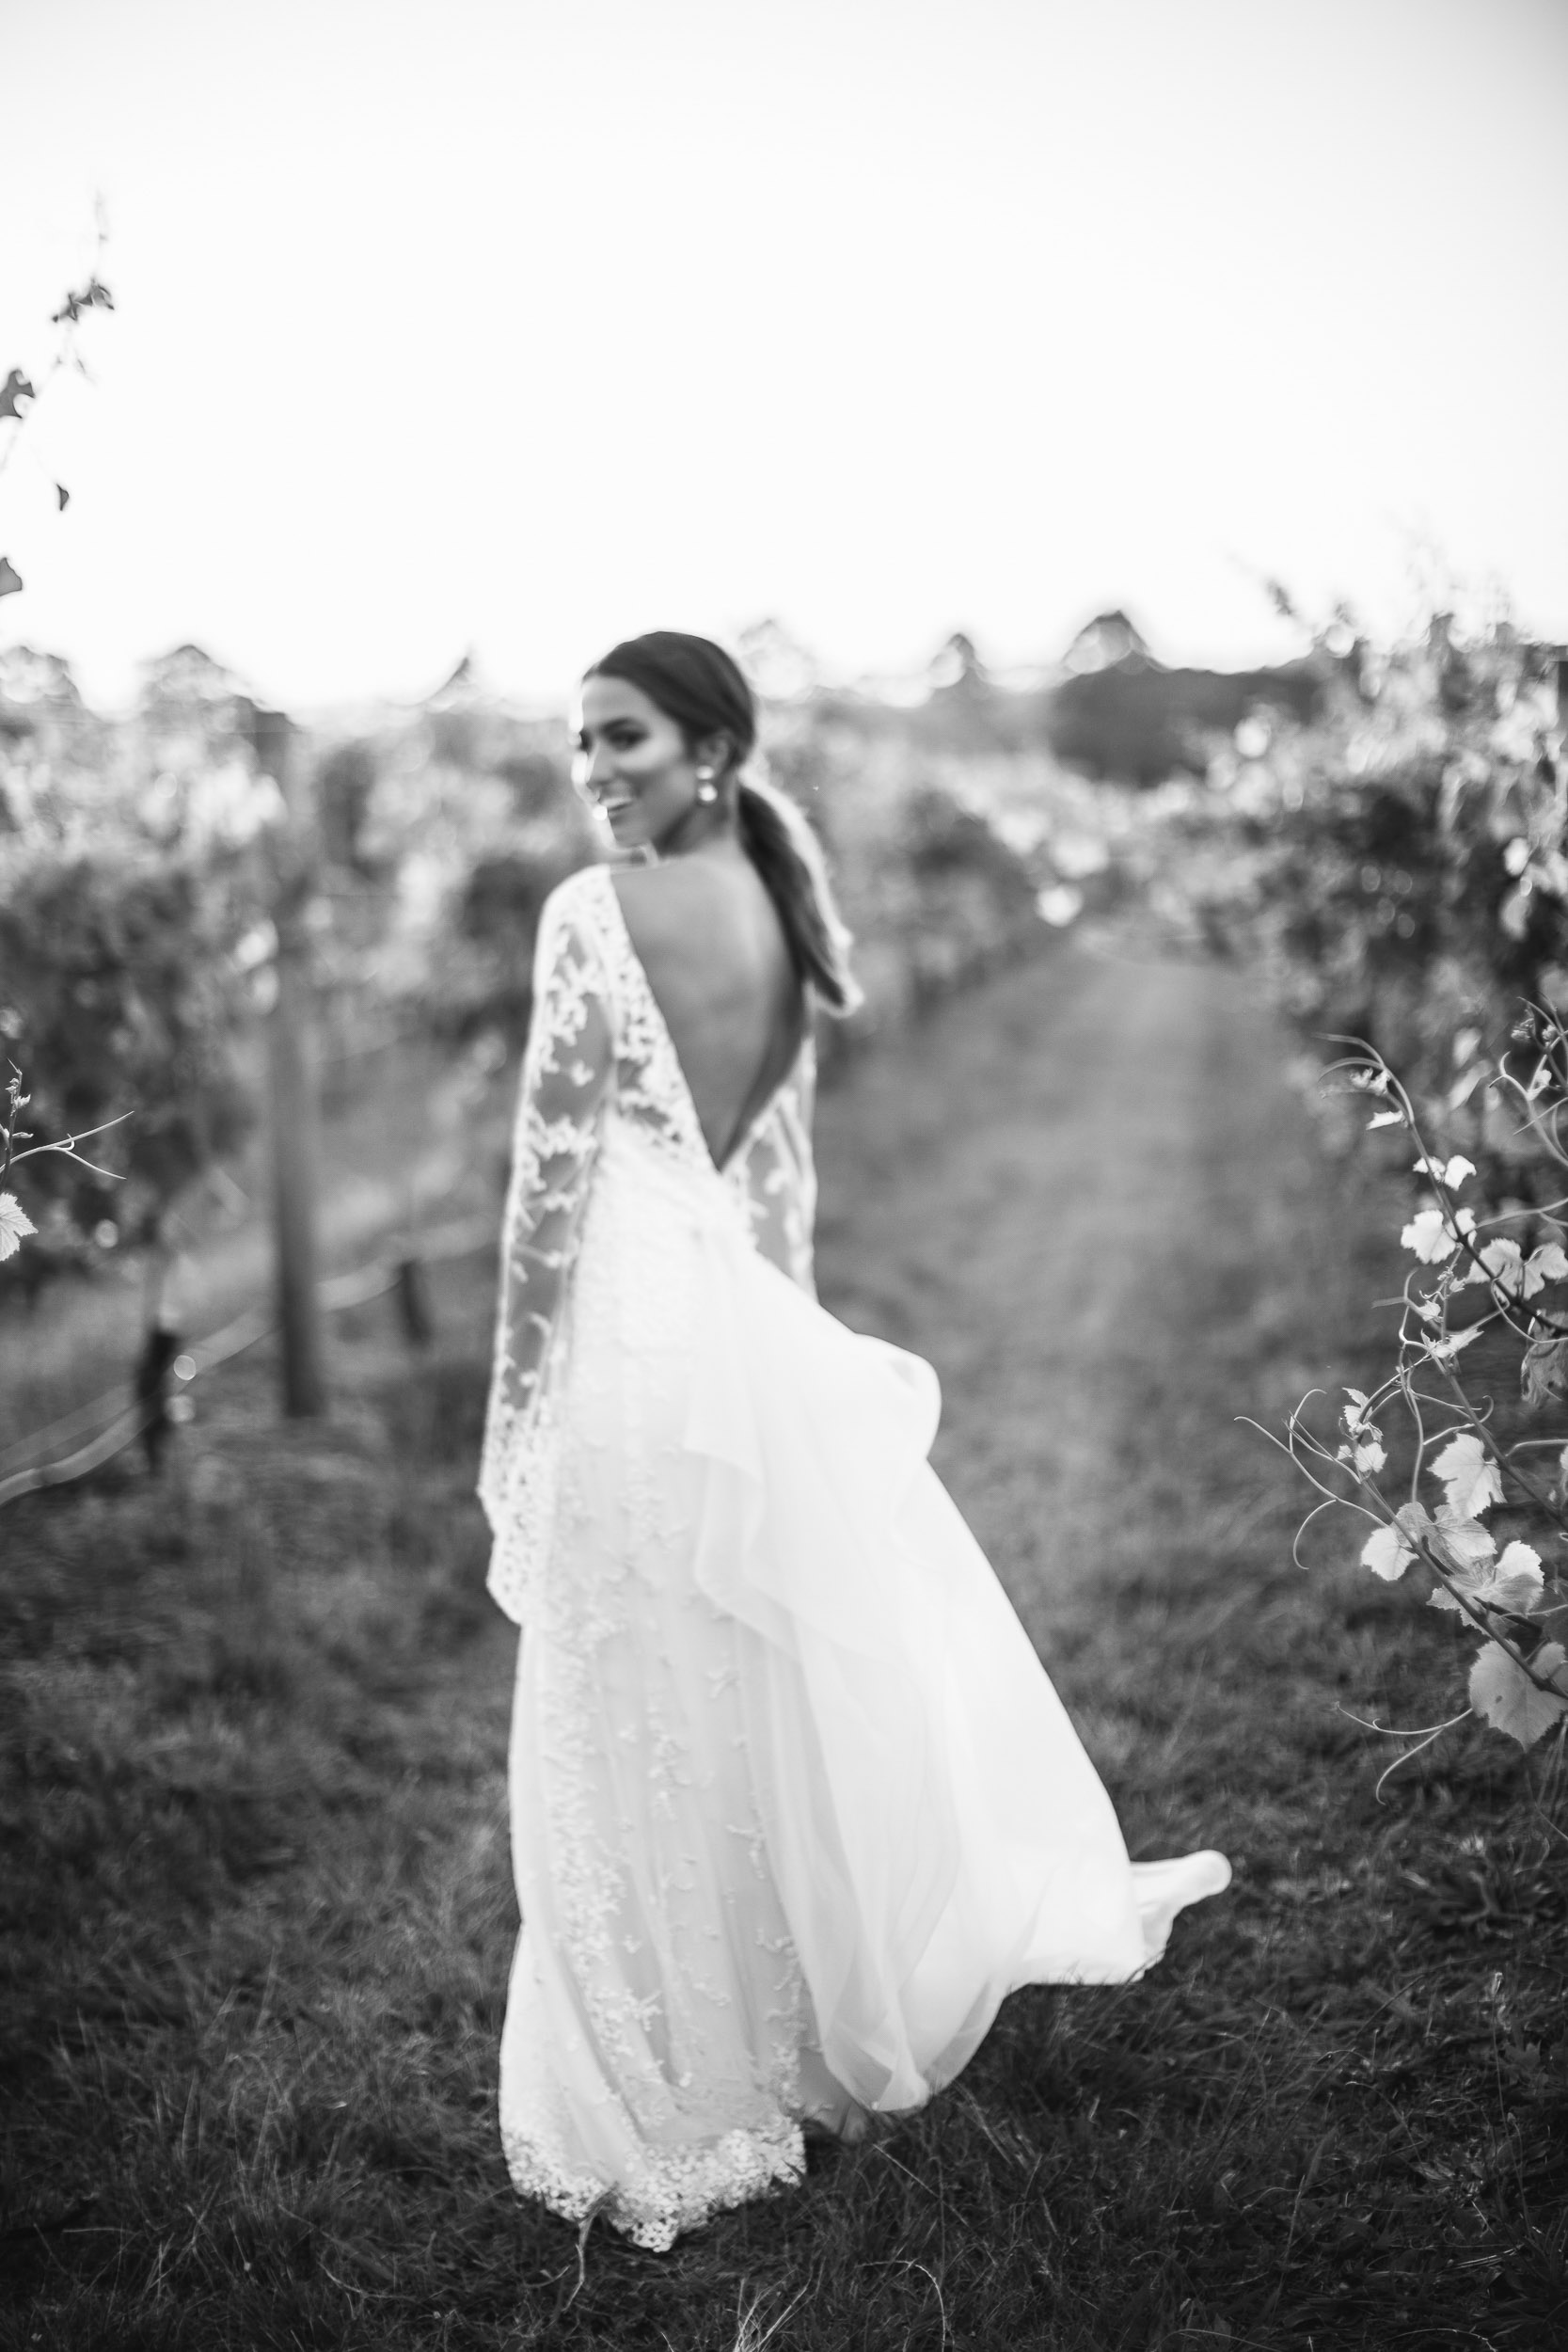 Kas-Richards-Wedding-Ediorial-Photographer-Mornington-Peninsula-Winery-Wedding-Karen-Willis-Holmes-Gown-Pop-up-with-Style-Planners-30.jpg